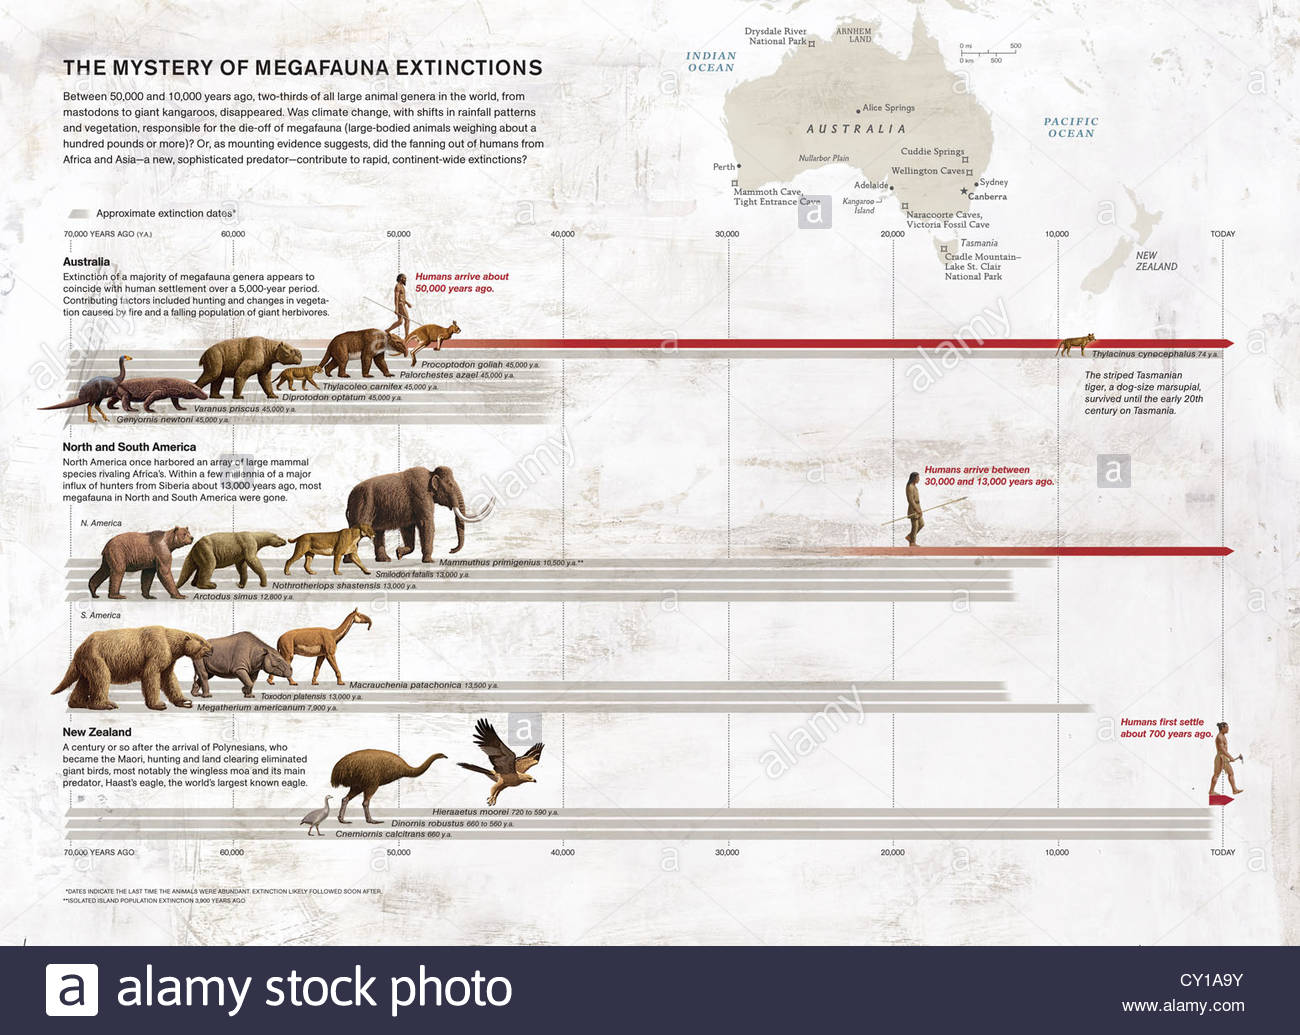 the possible causes of the australian megafauna extinctions at the end of the pleistocene The late pleistocene extinction event saw the extinction of many mammals weighing more than 40 kg the proportional rate of megafauna extinctions is consecutively larger the greater the human migratory distance from africa.